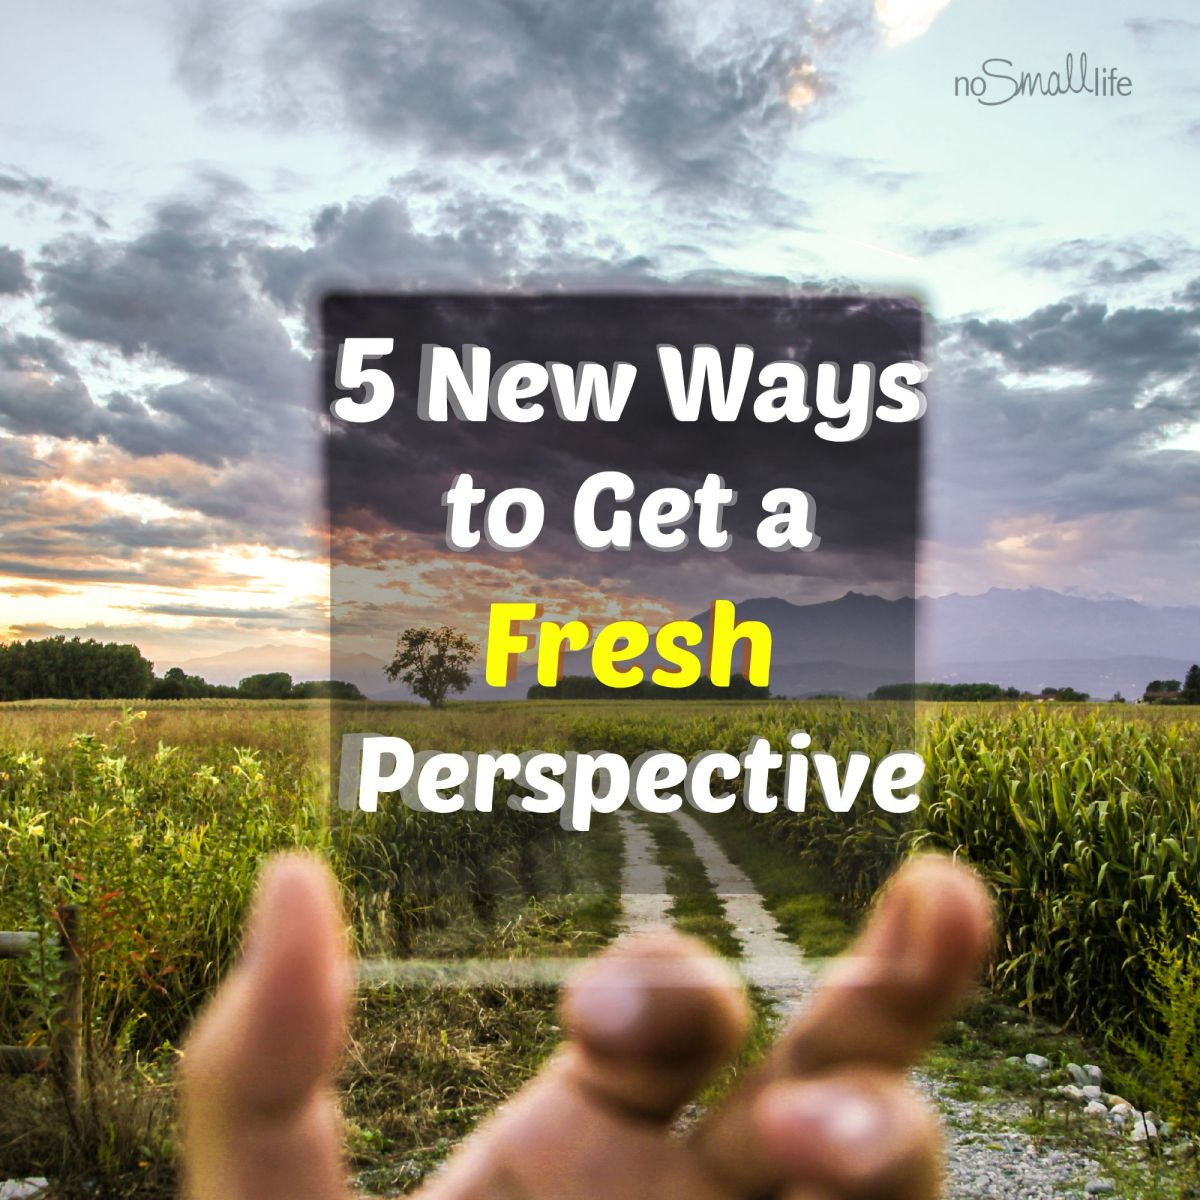 Overwhelmed? Here are 5 New Ways to Get a Fresh Perspective!